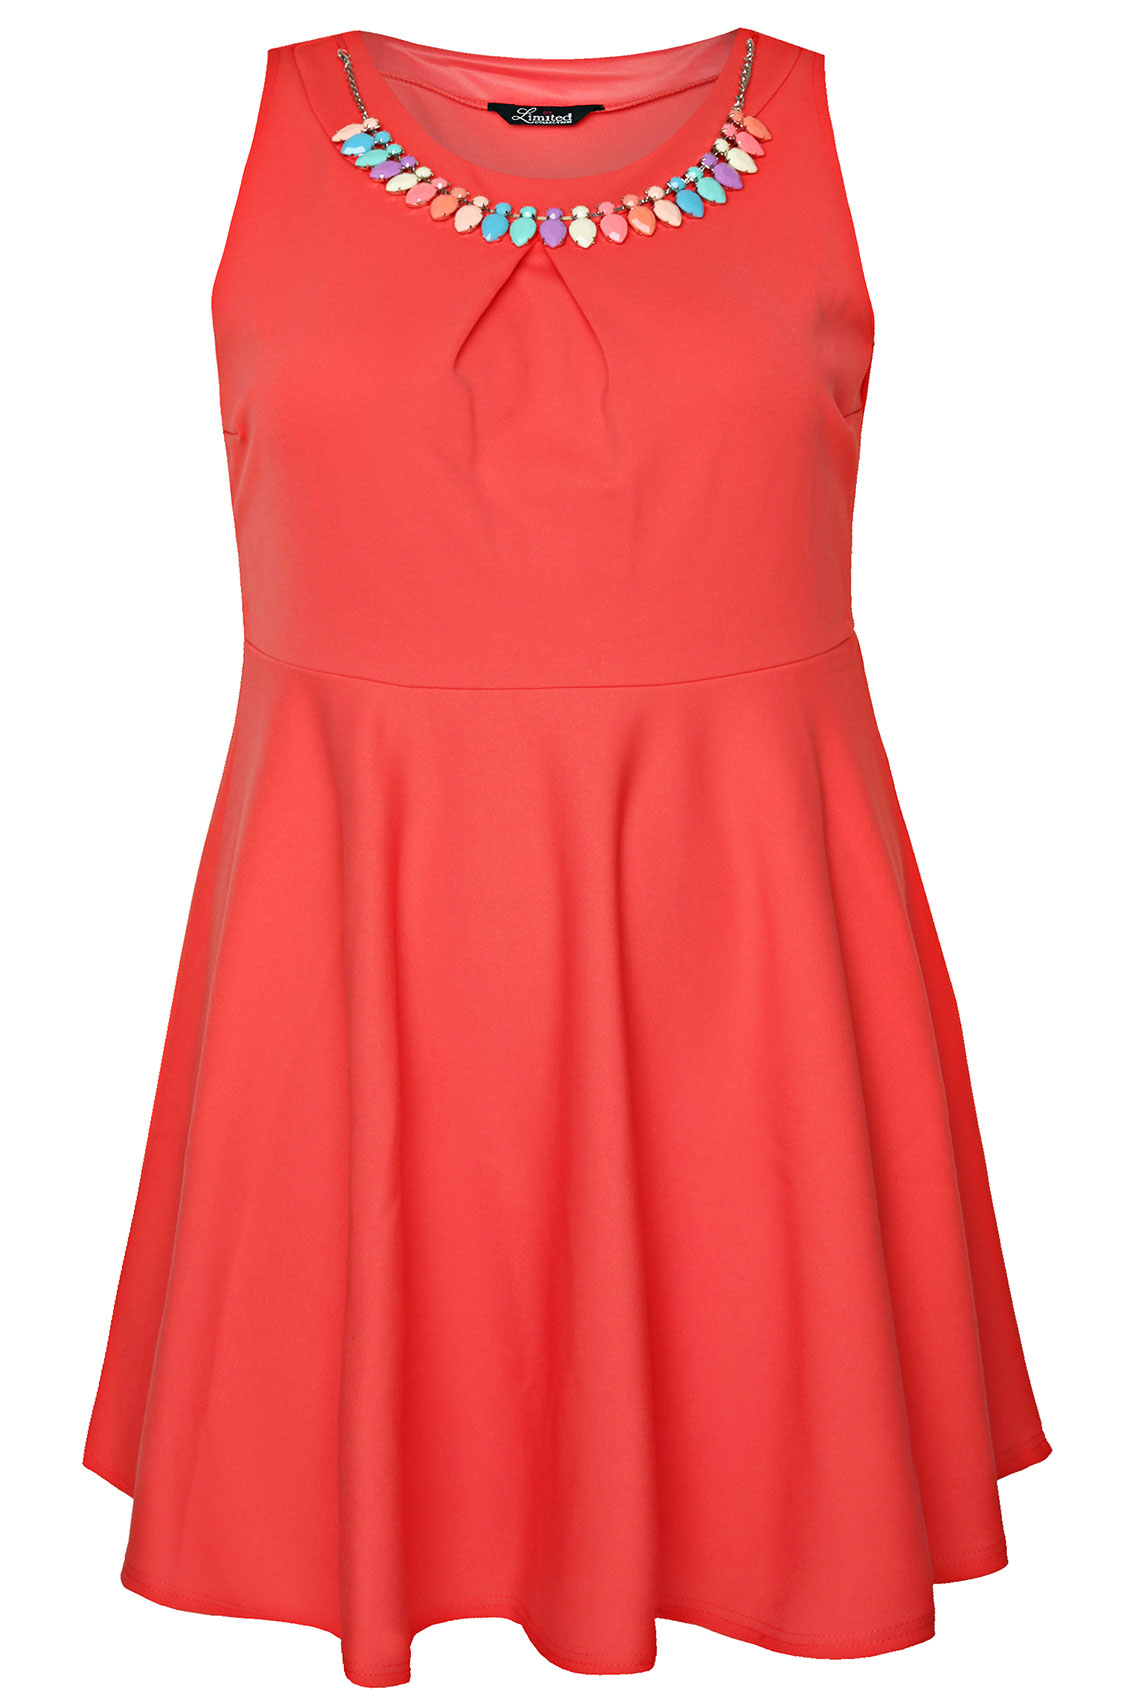 Coral skater dress with pastel jewel necklace pleat for Jewelry to wear with coral dress